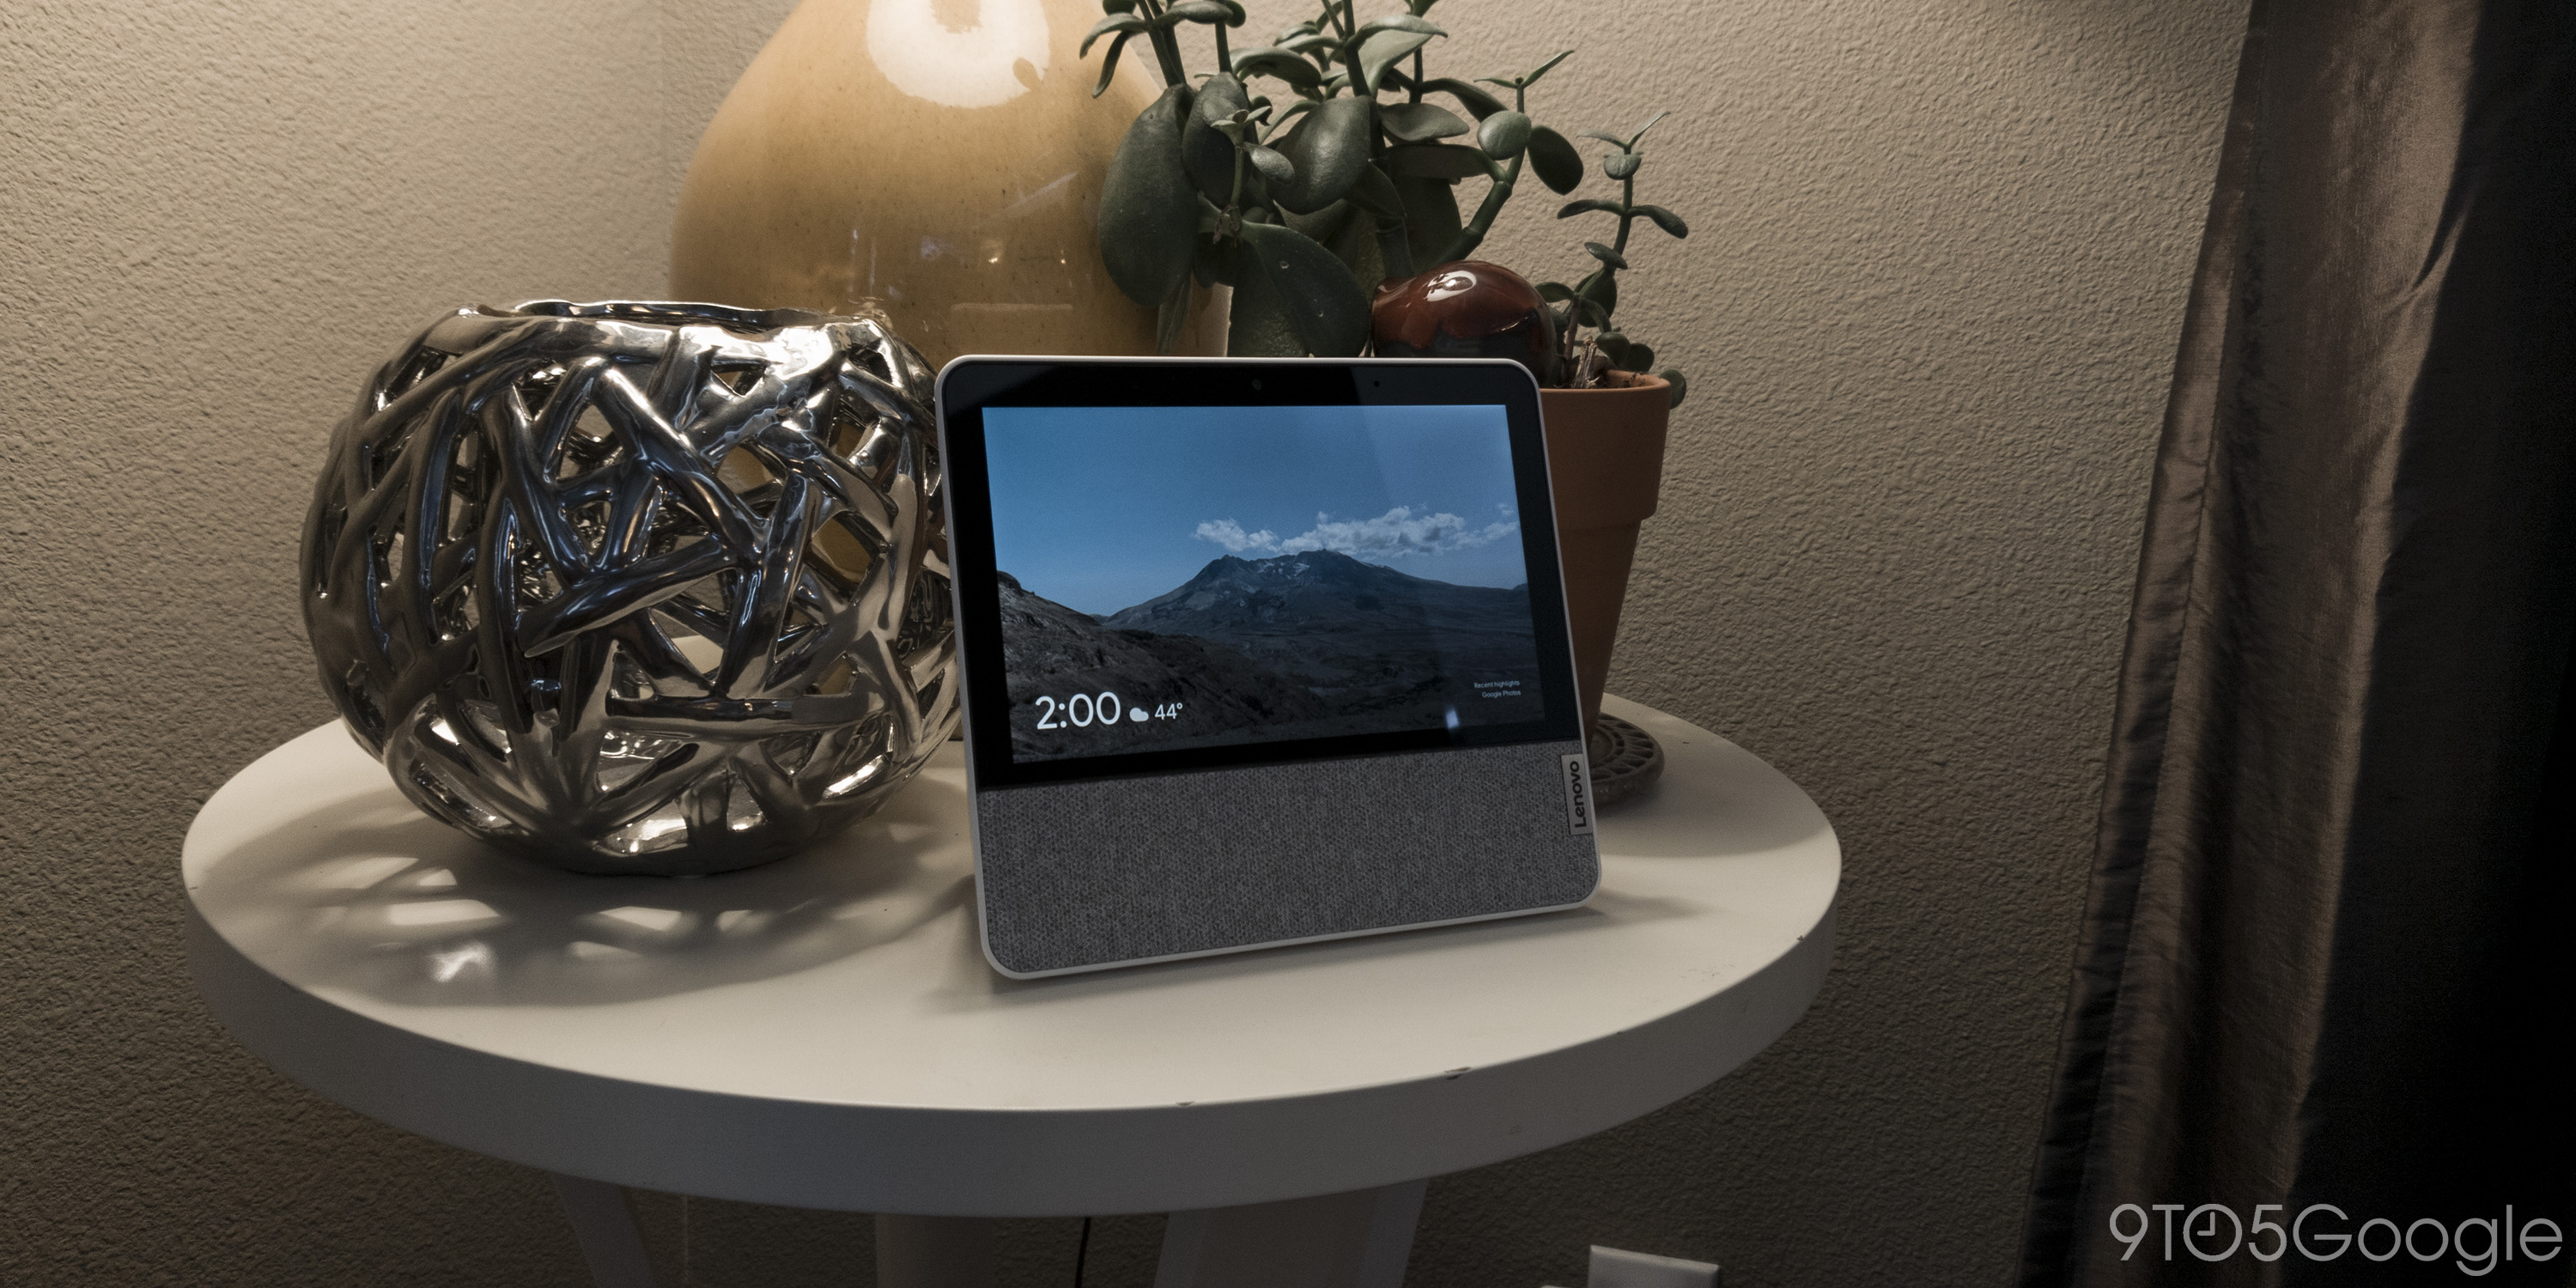 The Smart Display sitting on a table surrounded by small decor.